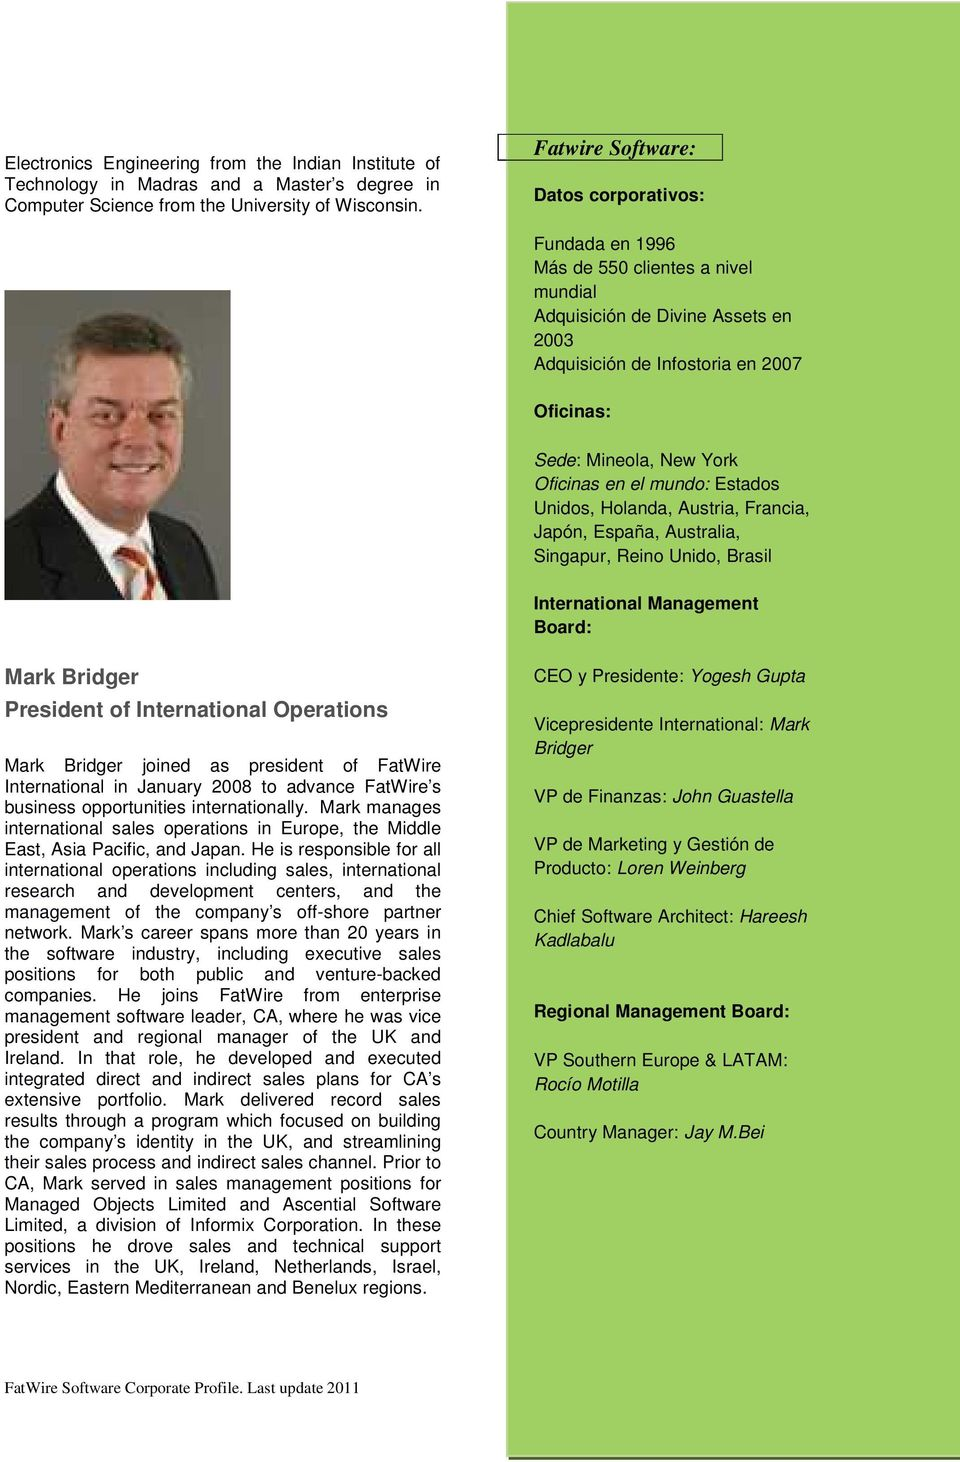 Mark manages international sales operations in Europe, the Middle East, Asia Pacific, and Japan.